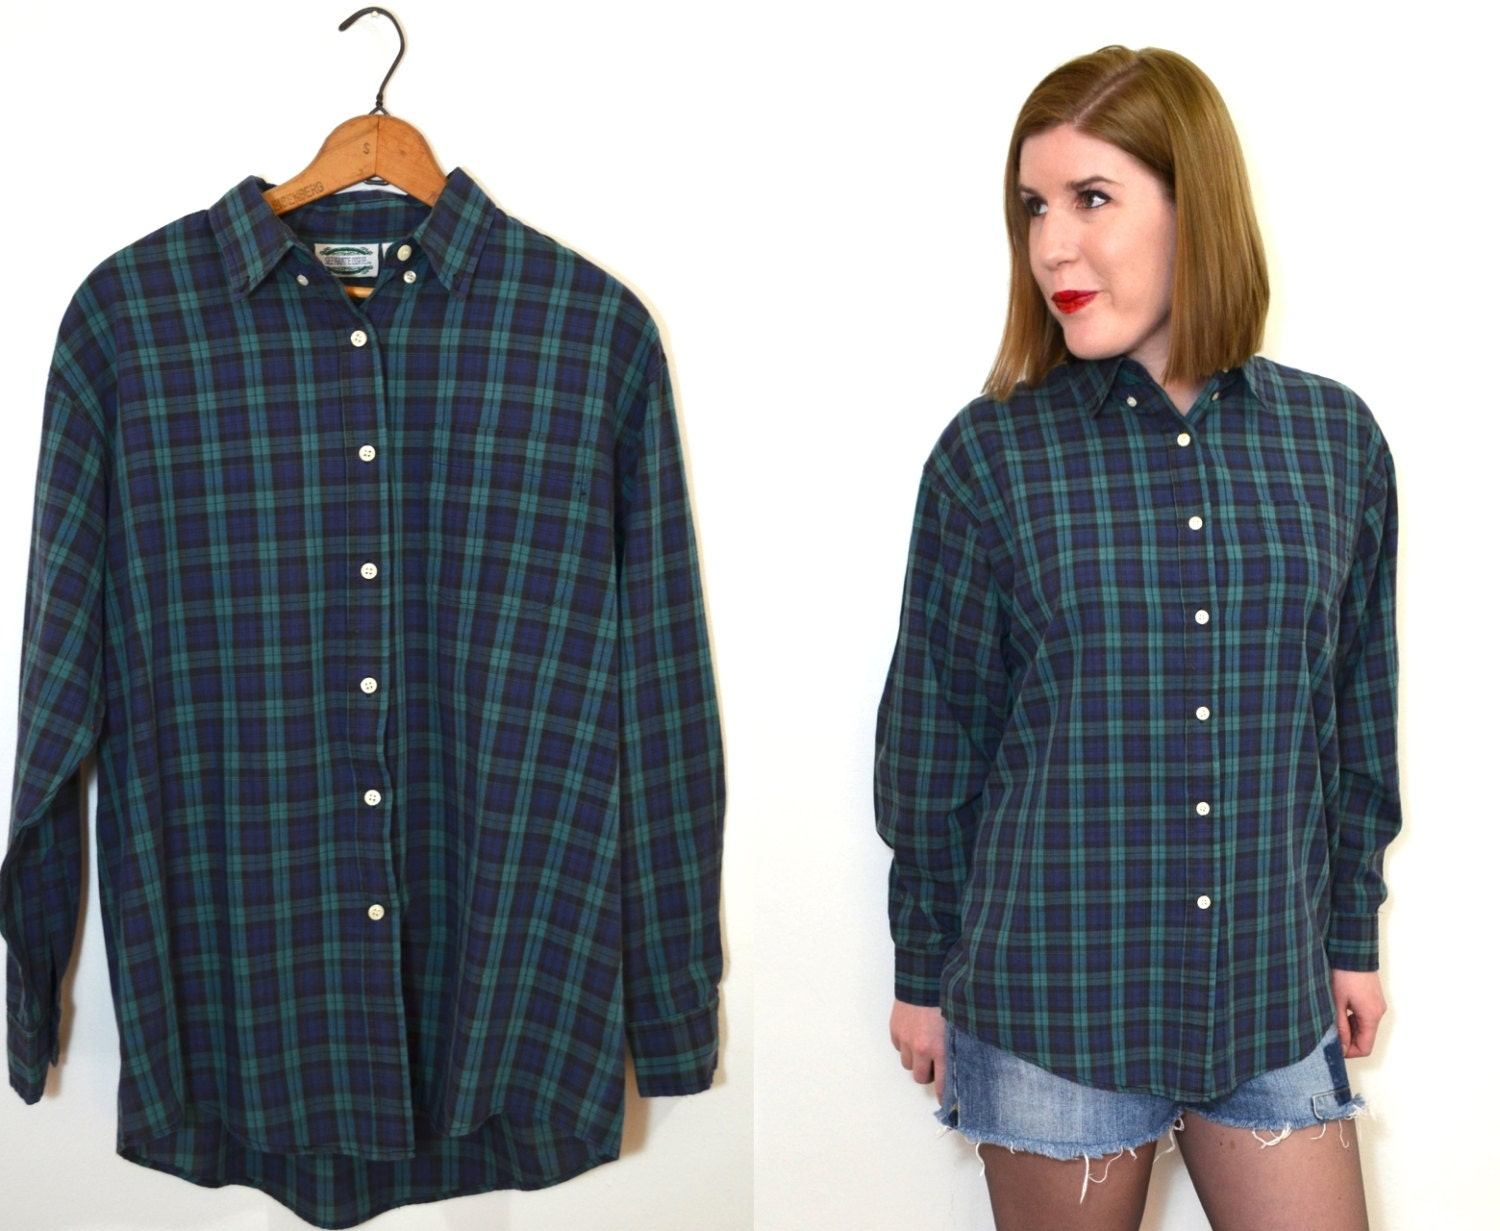 Find great deals on eBay for red blue plaid blouse. Shop with confidence.